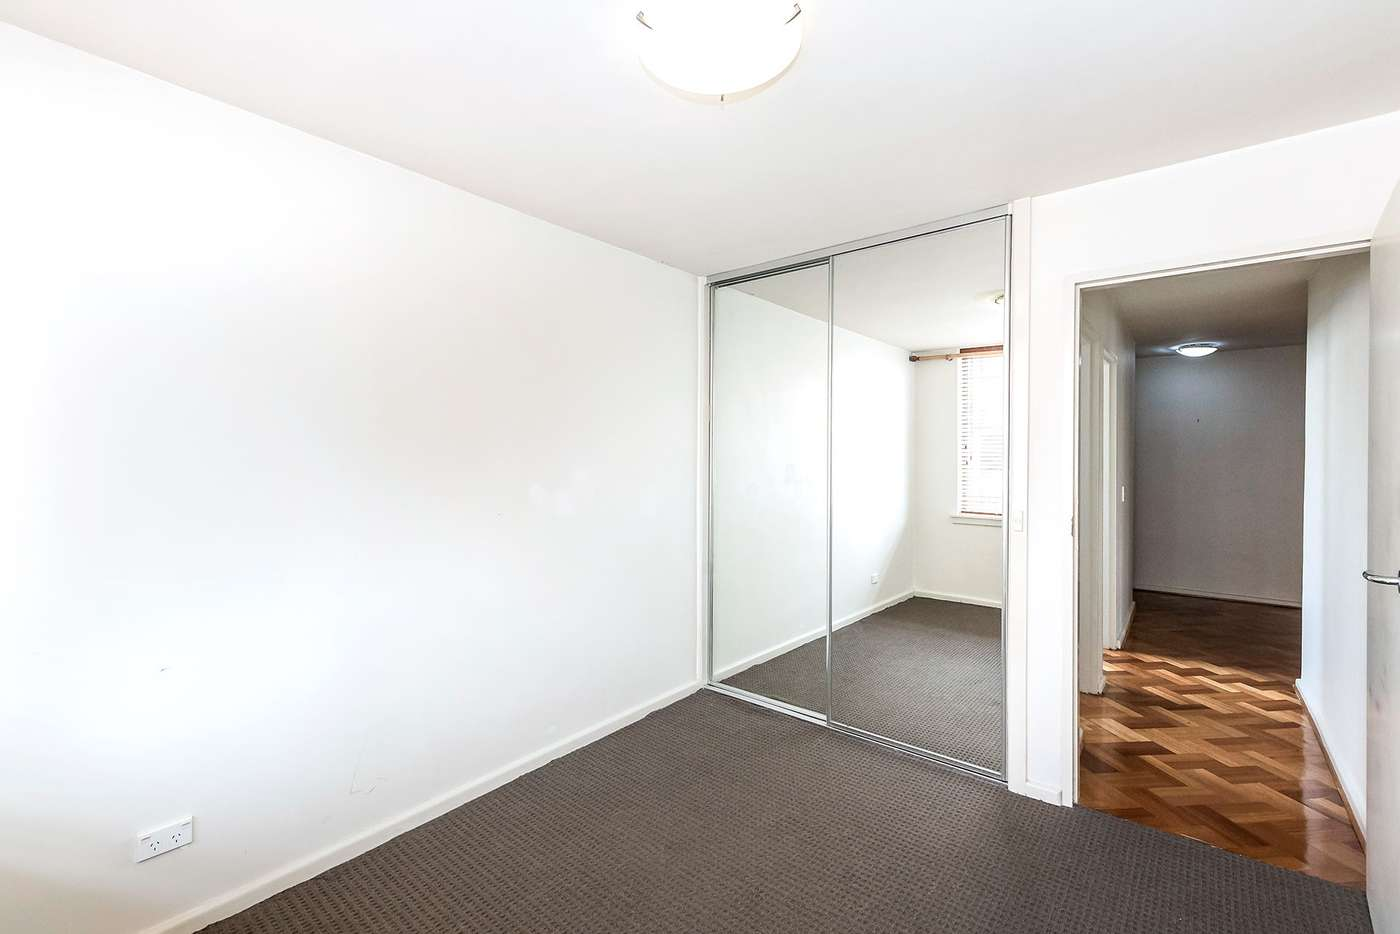 Fifth view of Homely apartment listing, 6/81 Alma Road, St Kilda VIC 3182